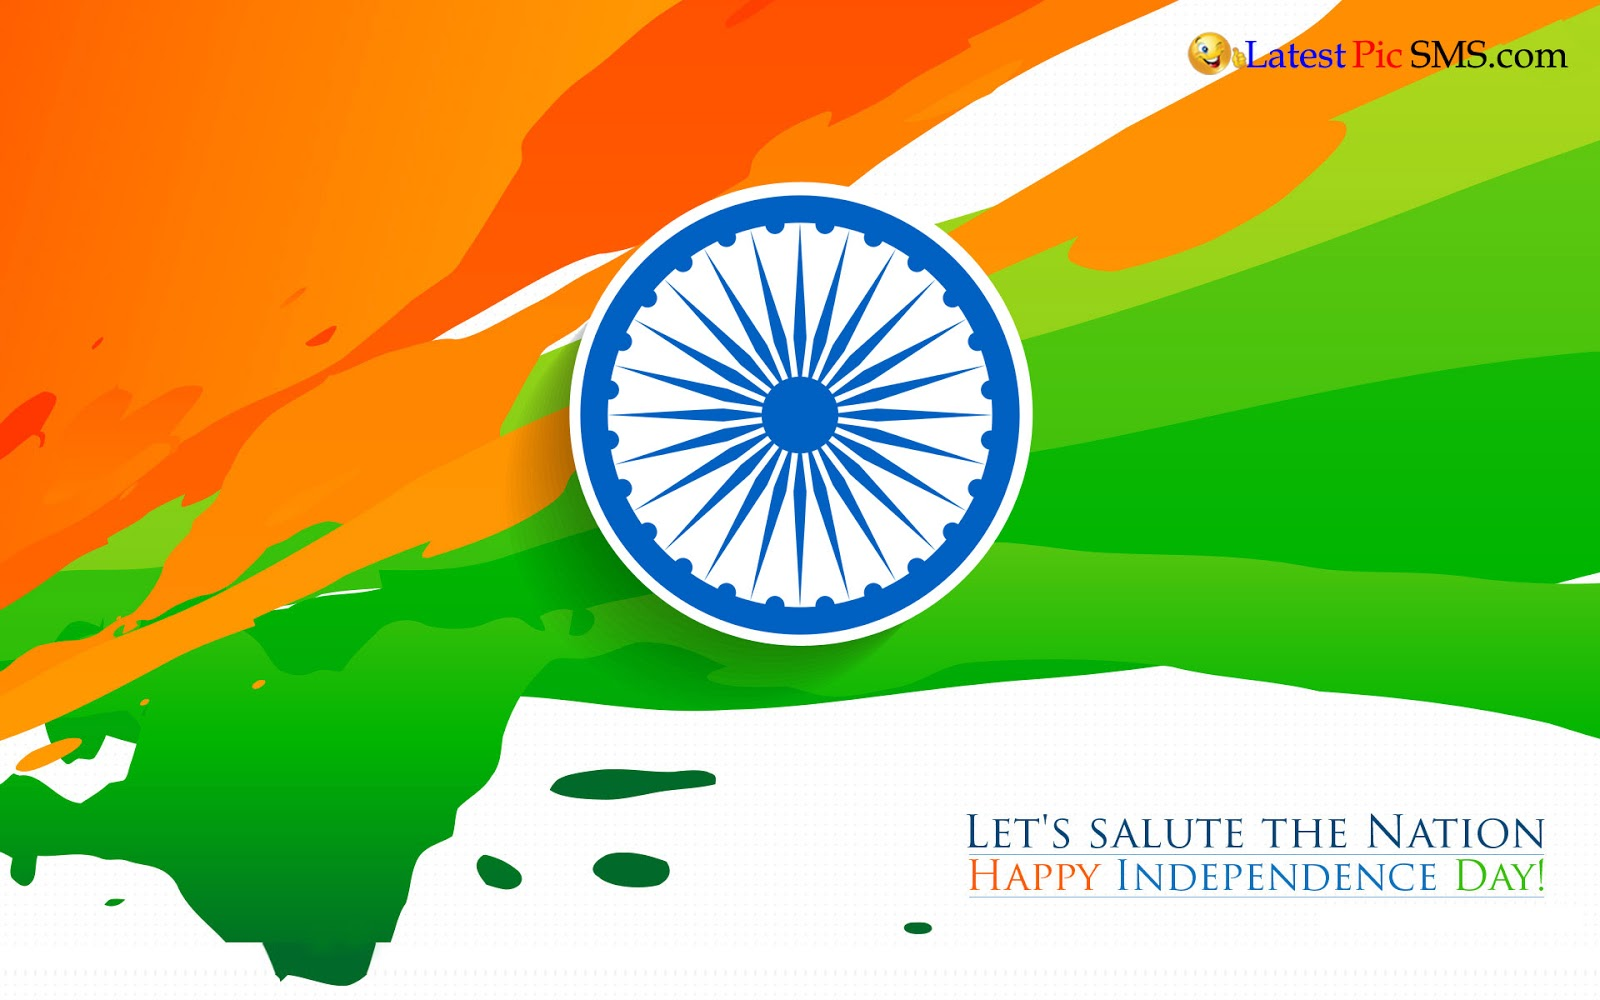 Happy Independence Day Photoshop